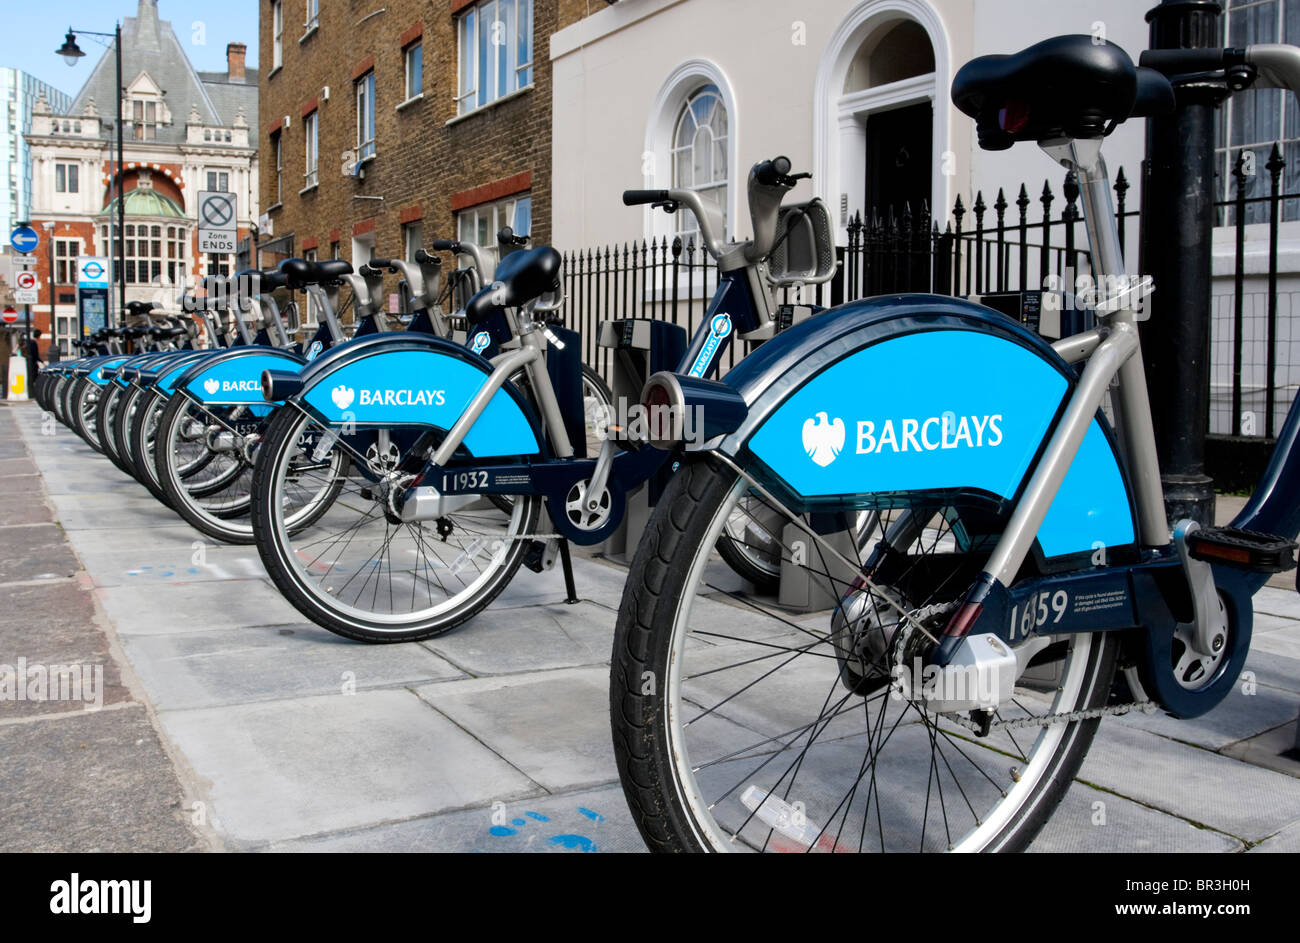 Bicycle docking station as part of the new London's Barclay's bicycle hire scheme, NW1, England, UK . - Stock Image